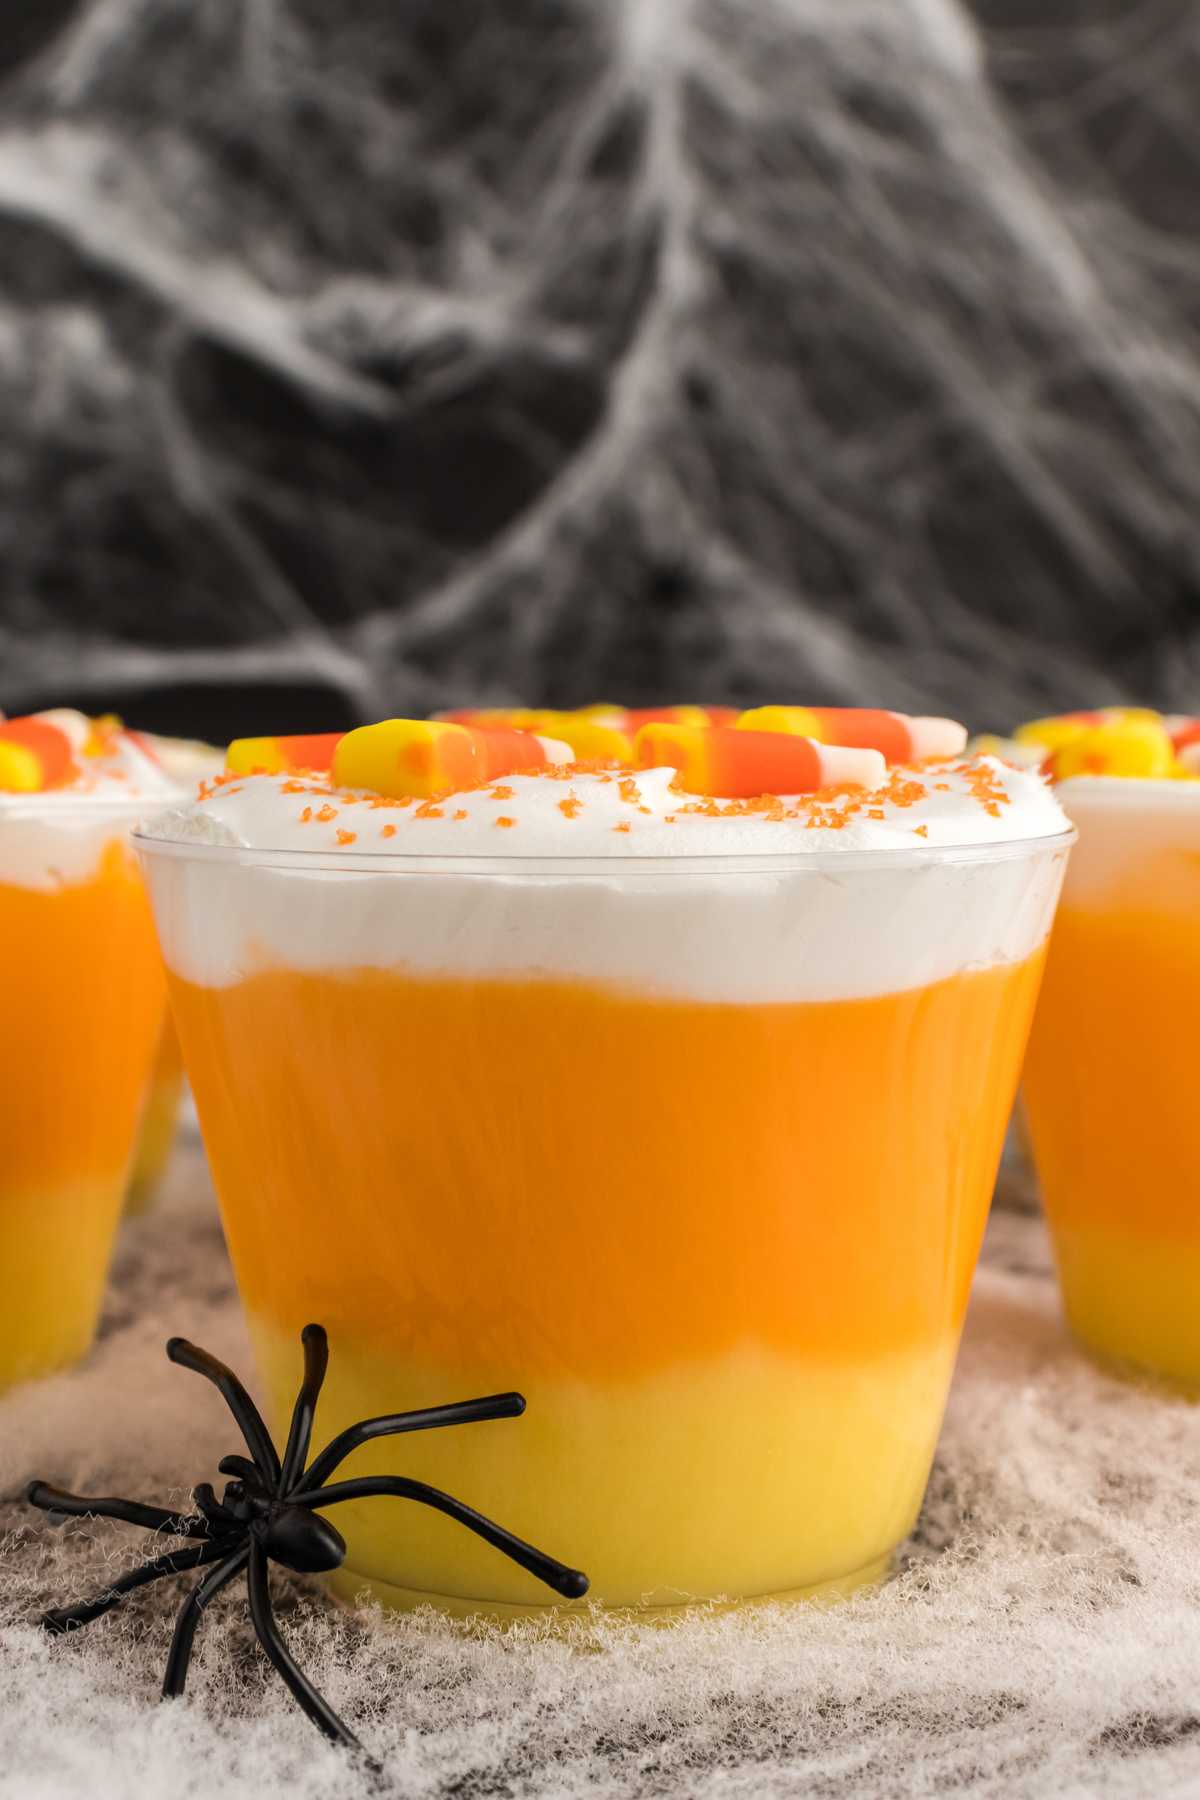 candy corn layered pudding dessert with a plastic spider